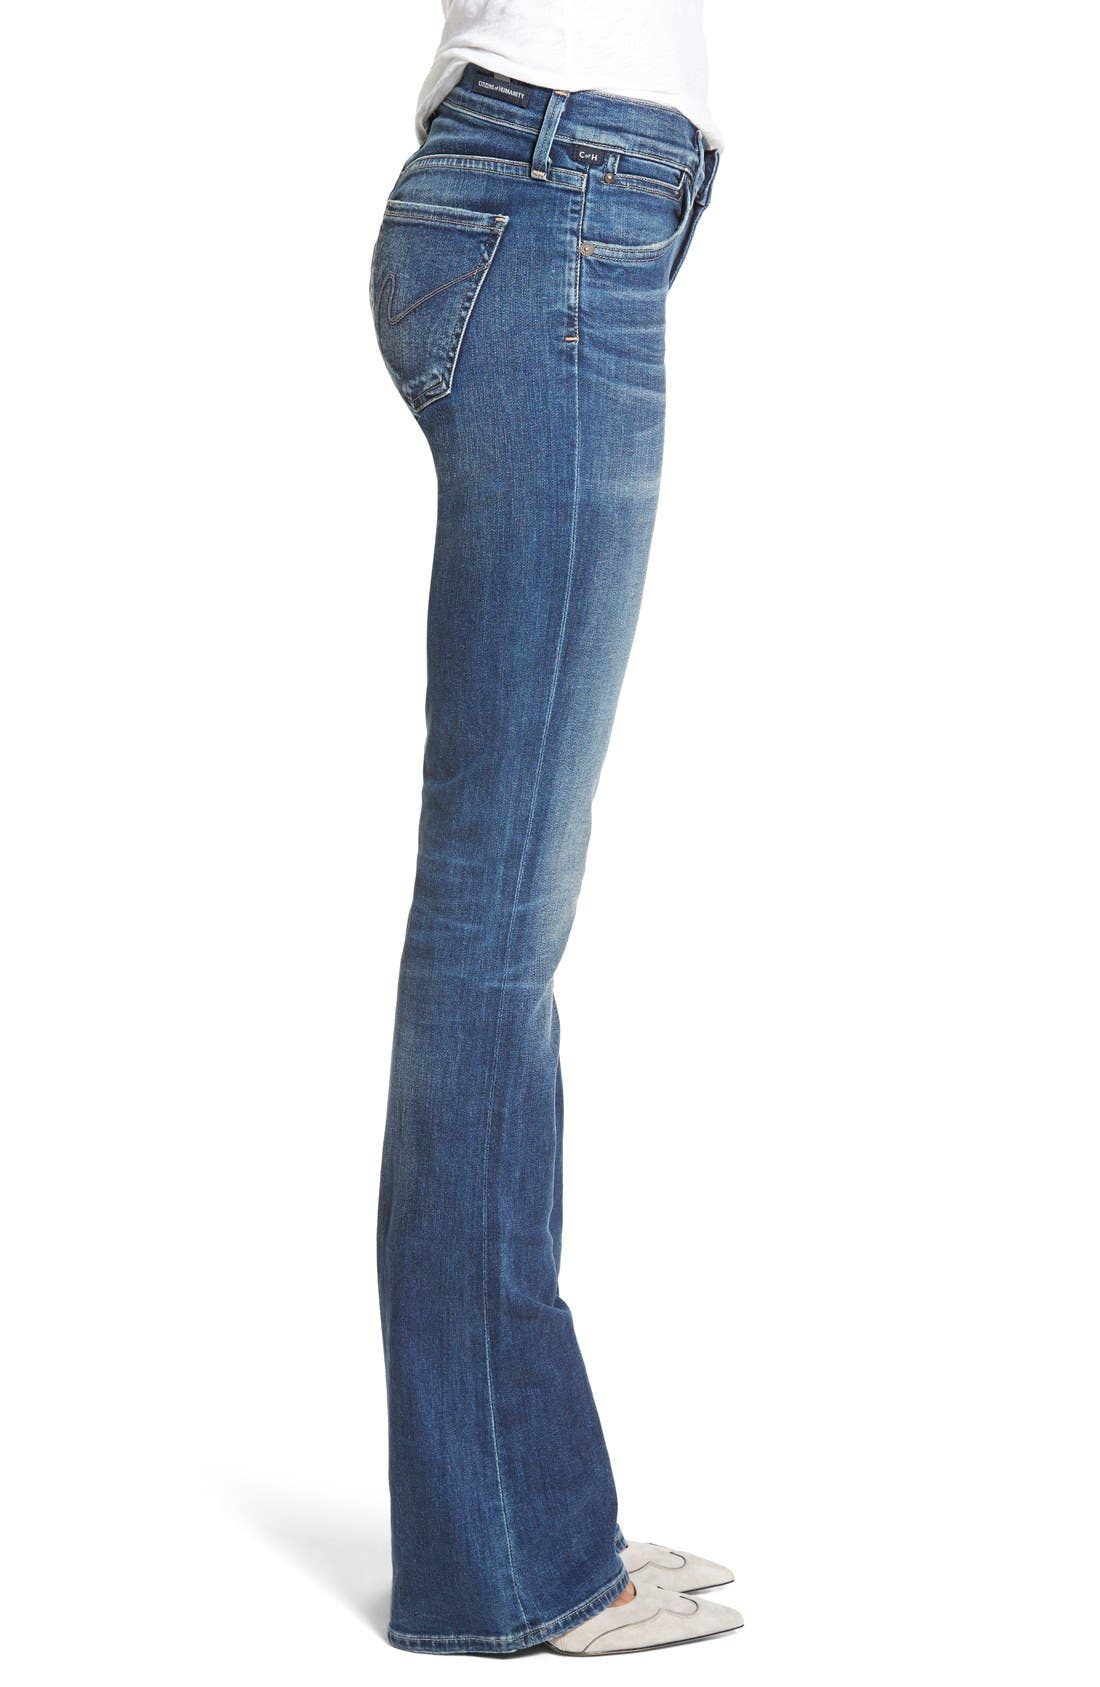 CITIZENS OF HUMANITY, 'Emannuelle' Slim BootcutJeans, Alternate thumbnail 7, color, MODERN LOVE